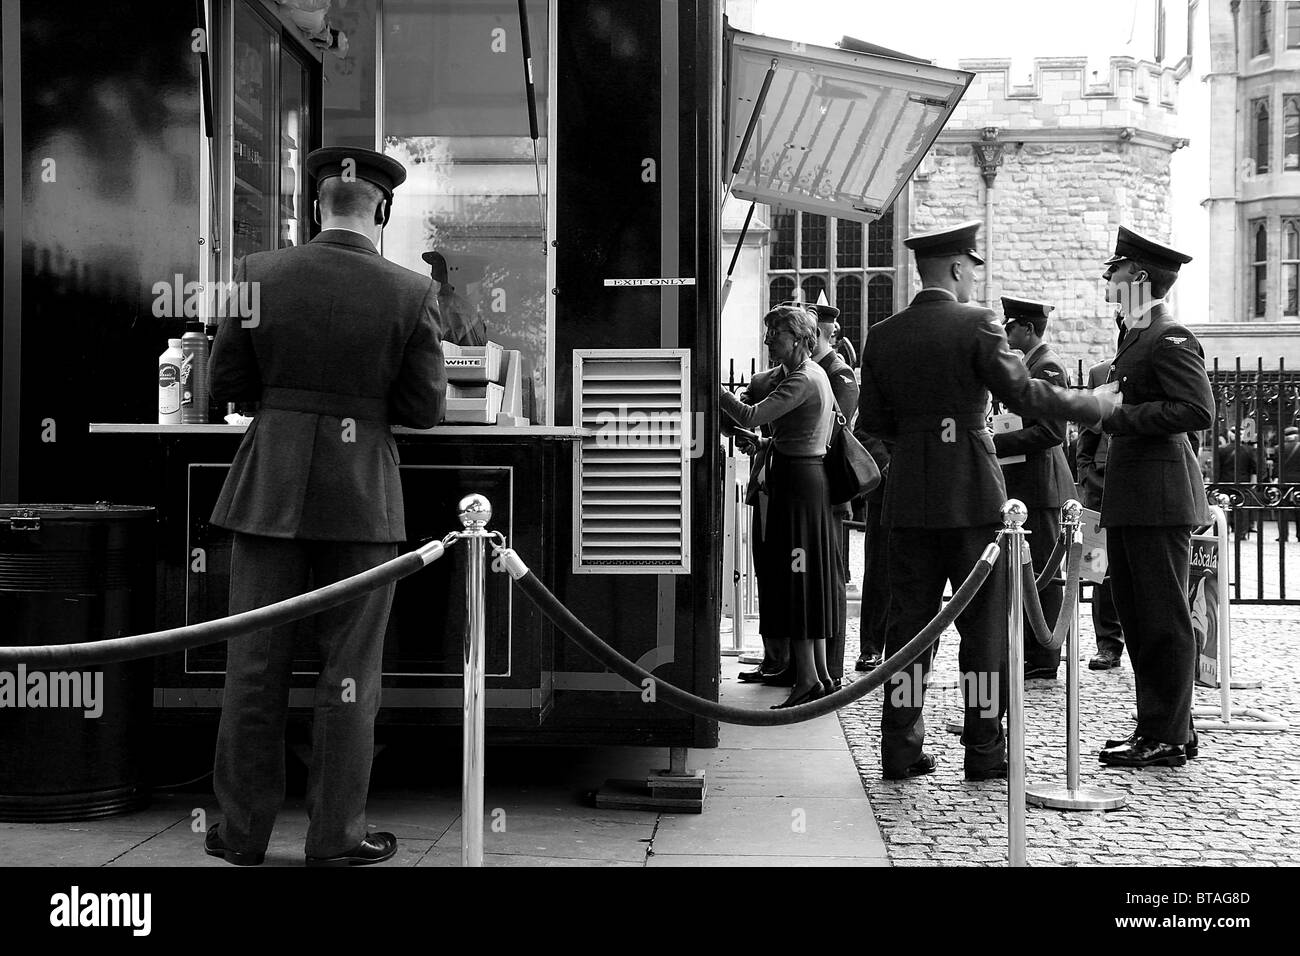 Black and White English soldiers in uniform buying at a kiosk next to Westminster church - Stock Image